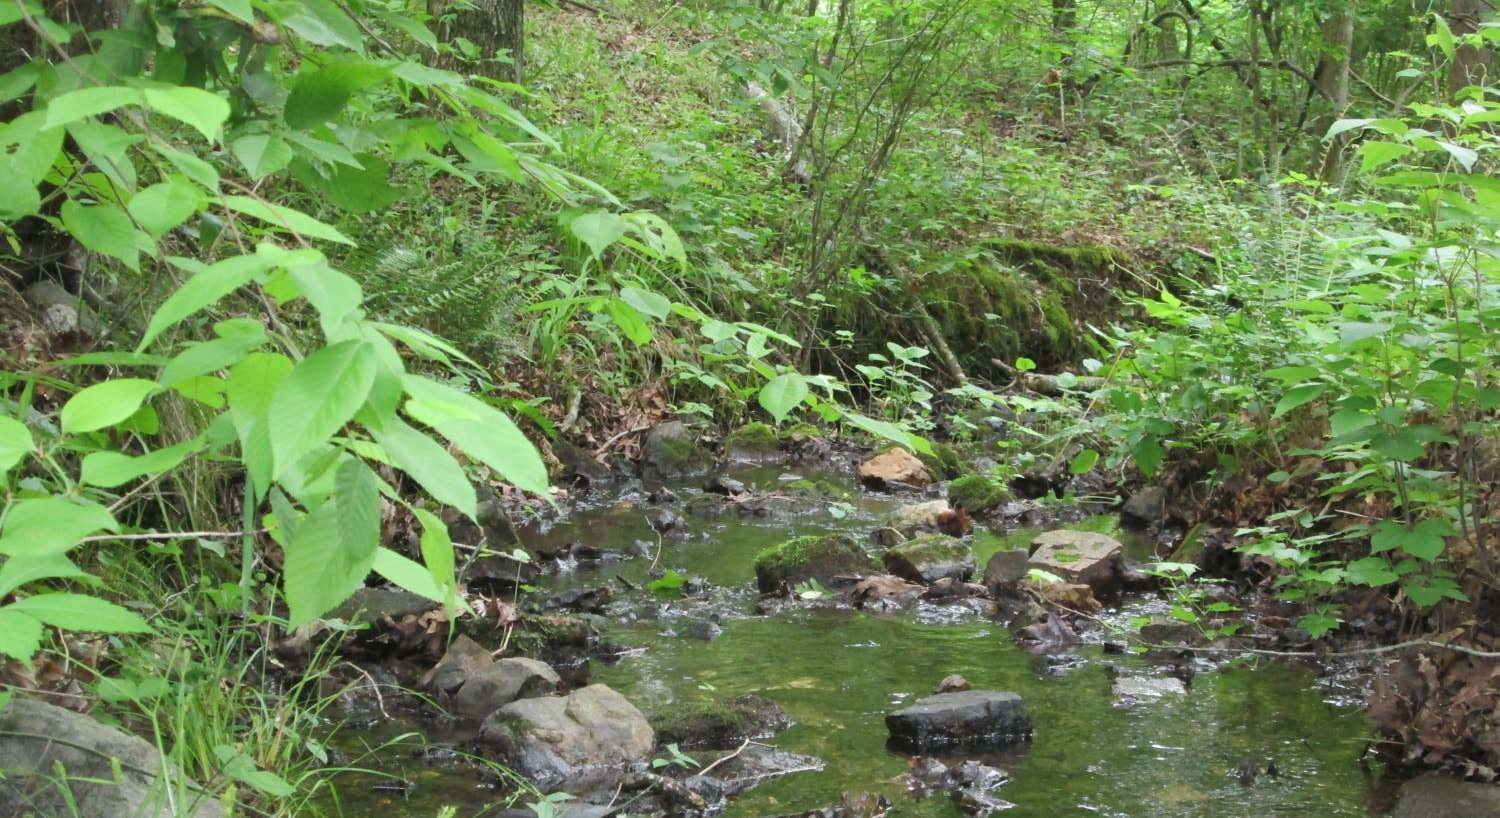 Water rippling over rocks surrounded by green leafy plants